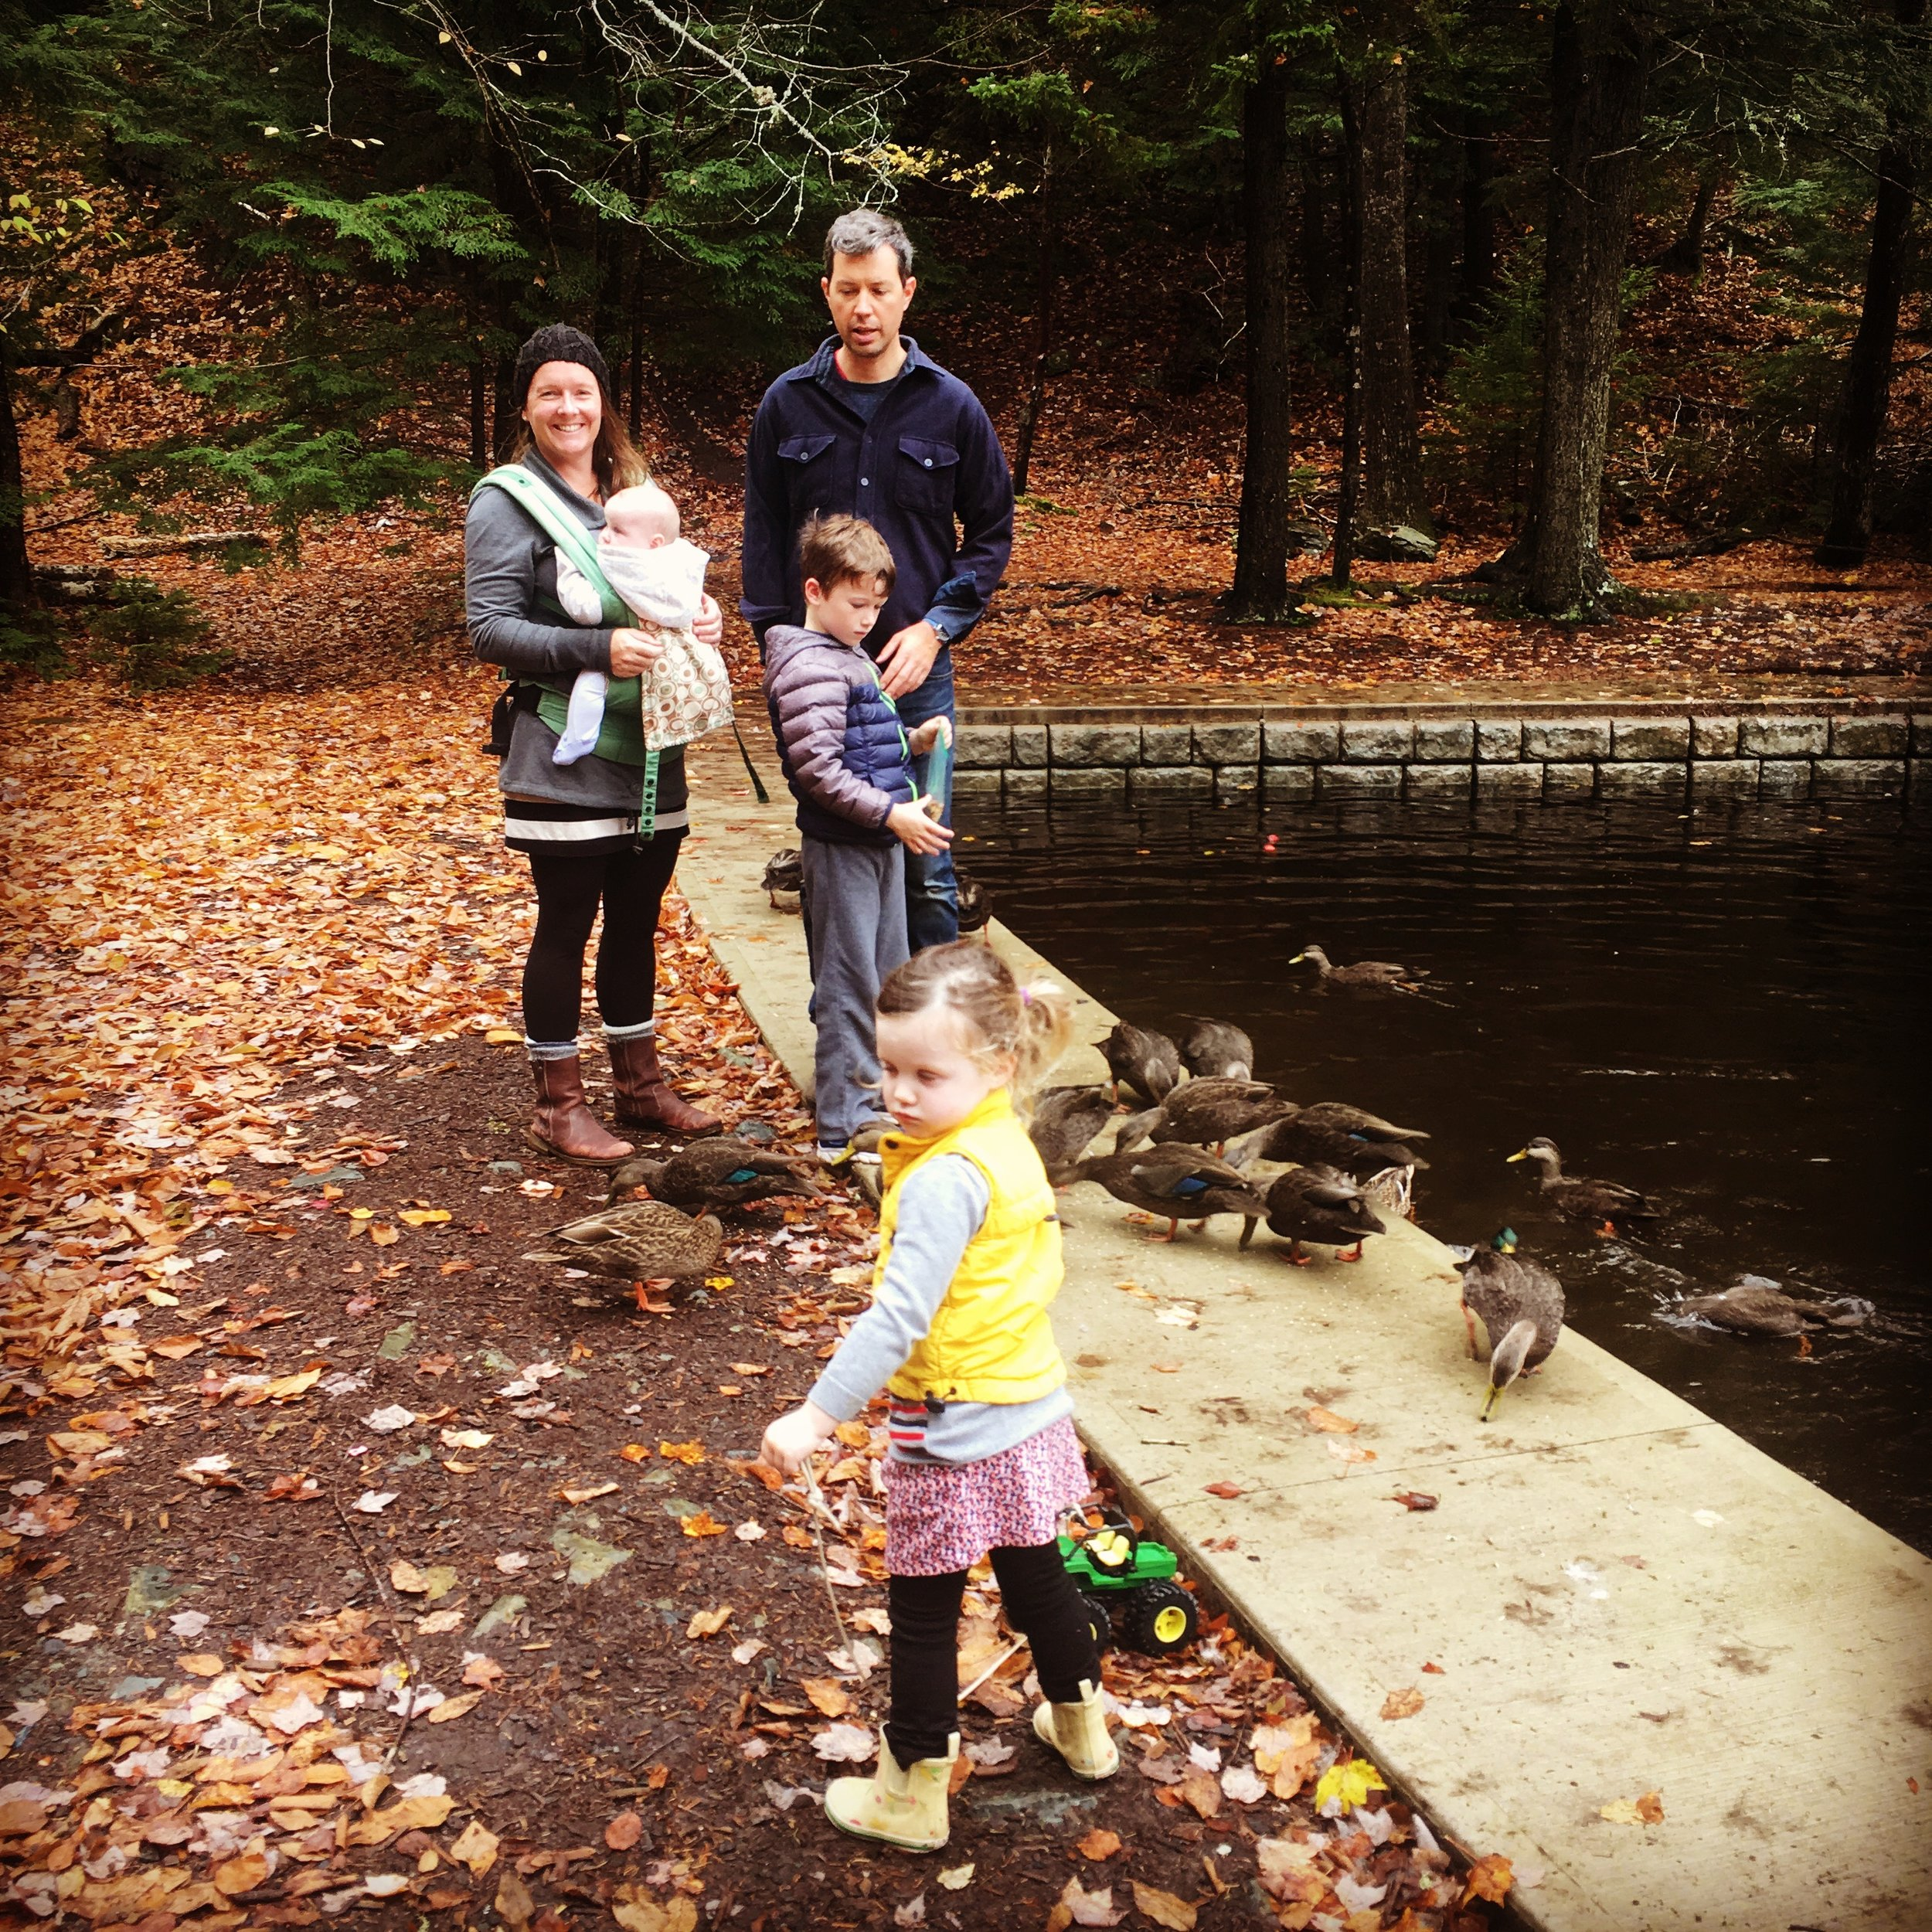 Family walk at the heart-shaped pond (Image courtesy of the Swick/McCrossin Famiy)